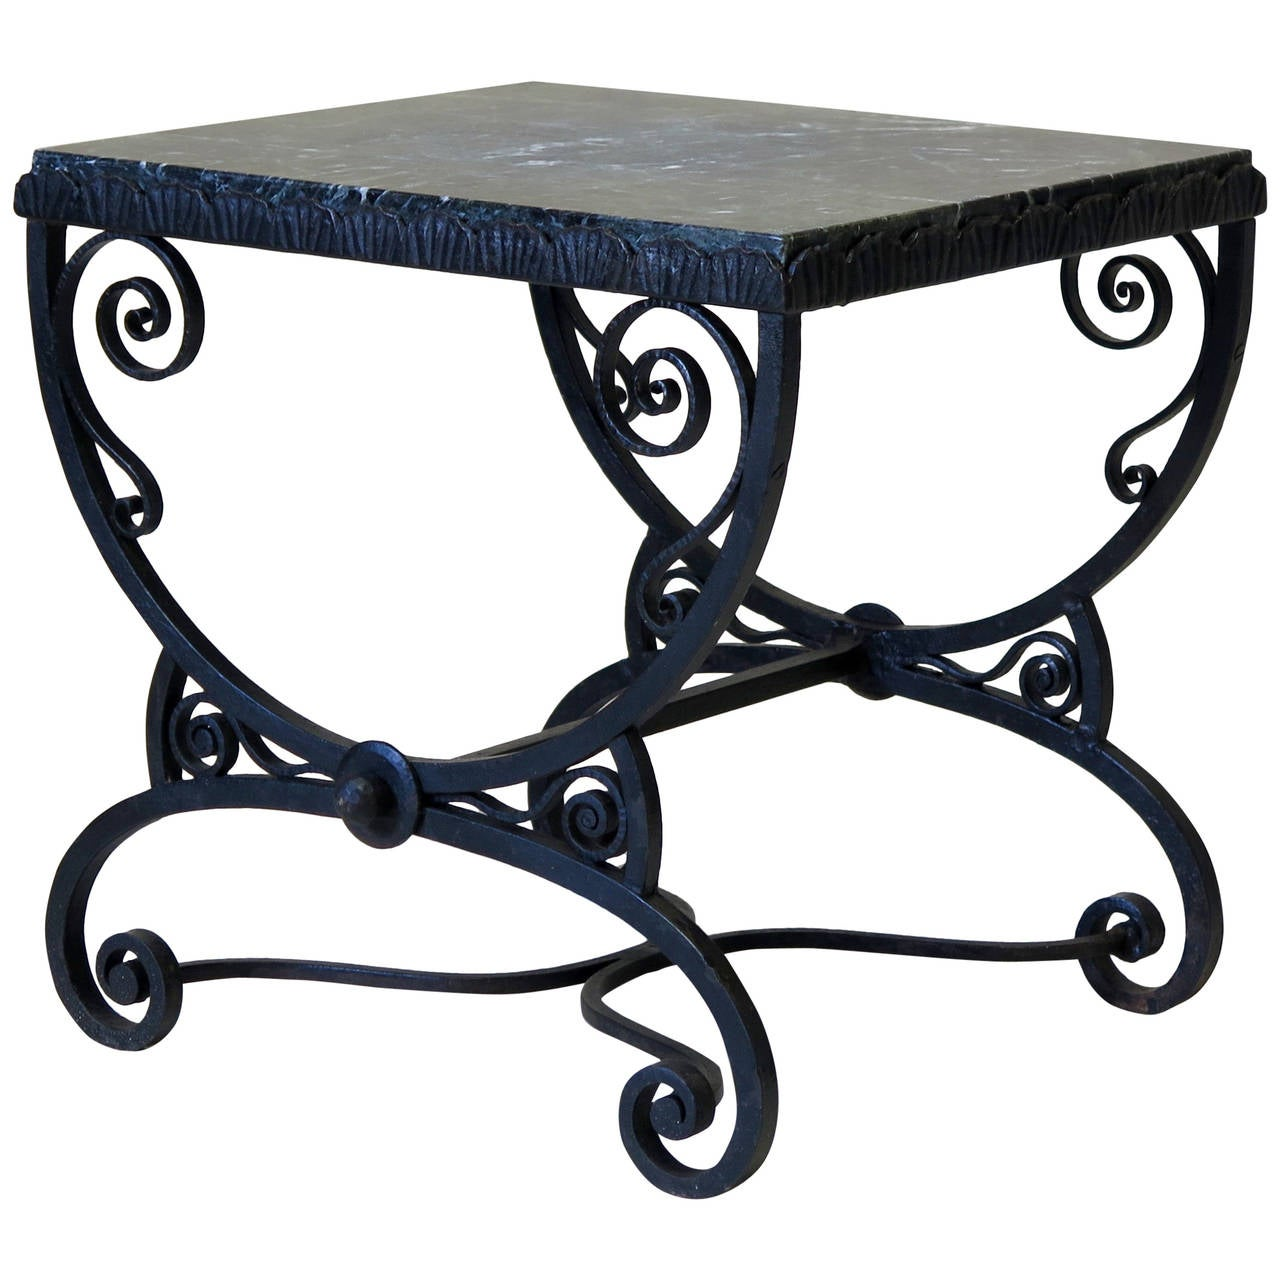 small art deco wrought iron table with green marble top. Black Bedroom Furniture Sets. Home Design Ideas